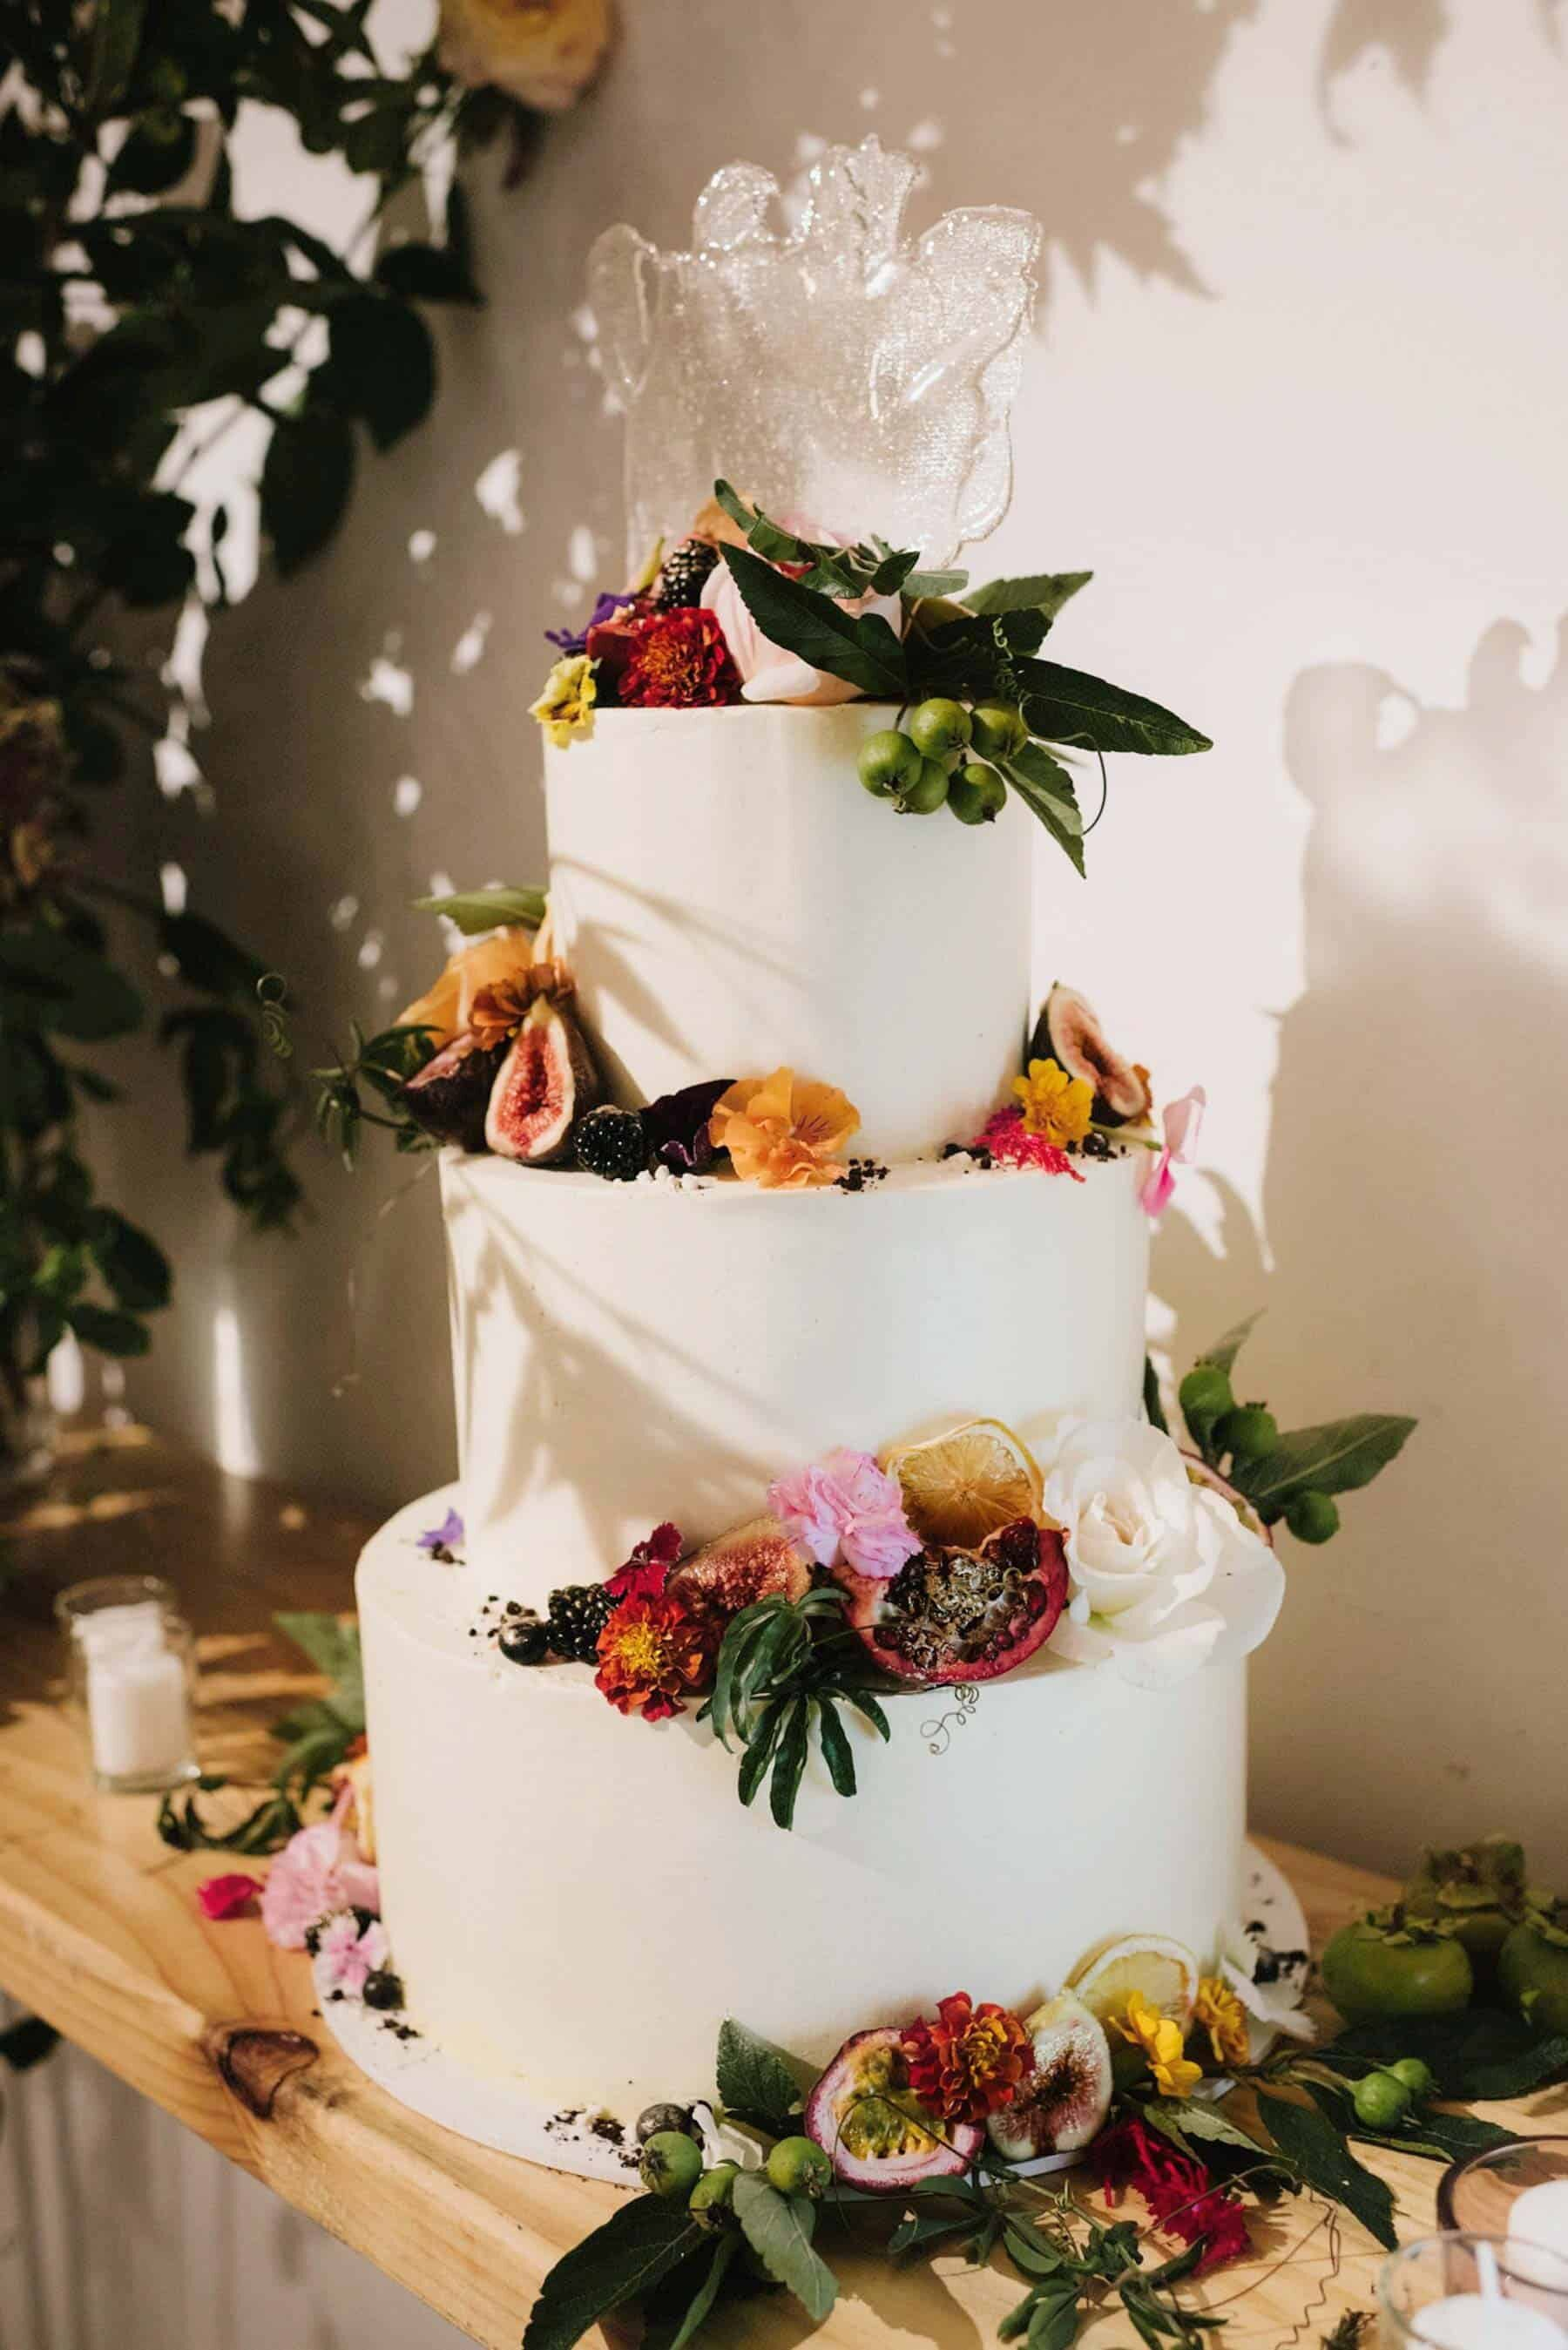 simple three tier wedding cake with fresh fruit and flowers